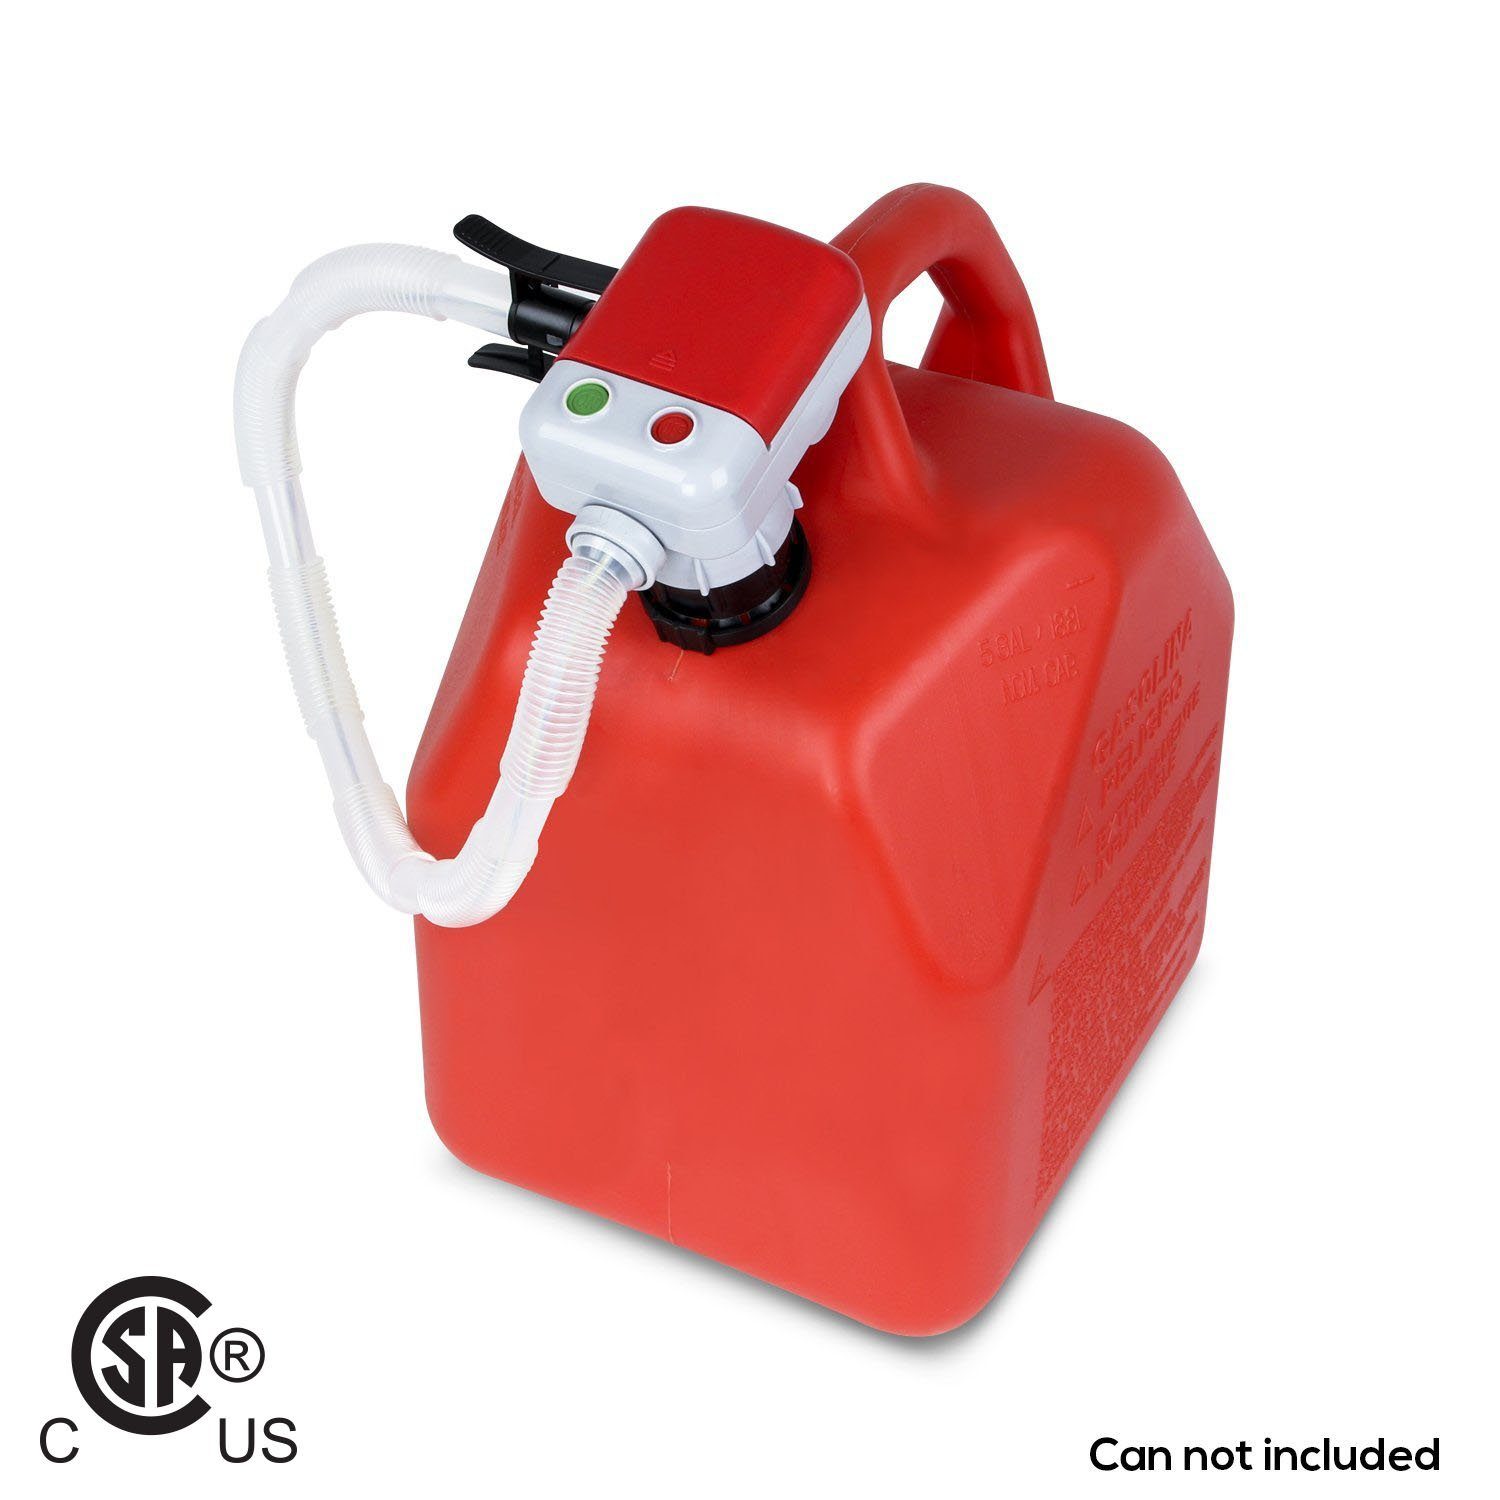 No More Heavy Gas Can Lifting/Fuel Transfer Pump Fitting Any Gas Cans (Advanced Auto-Stop Funtion and Flexible In and Out Take Hose) TeraPump A-TRFA01-V3-001